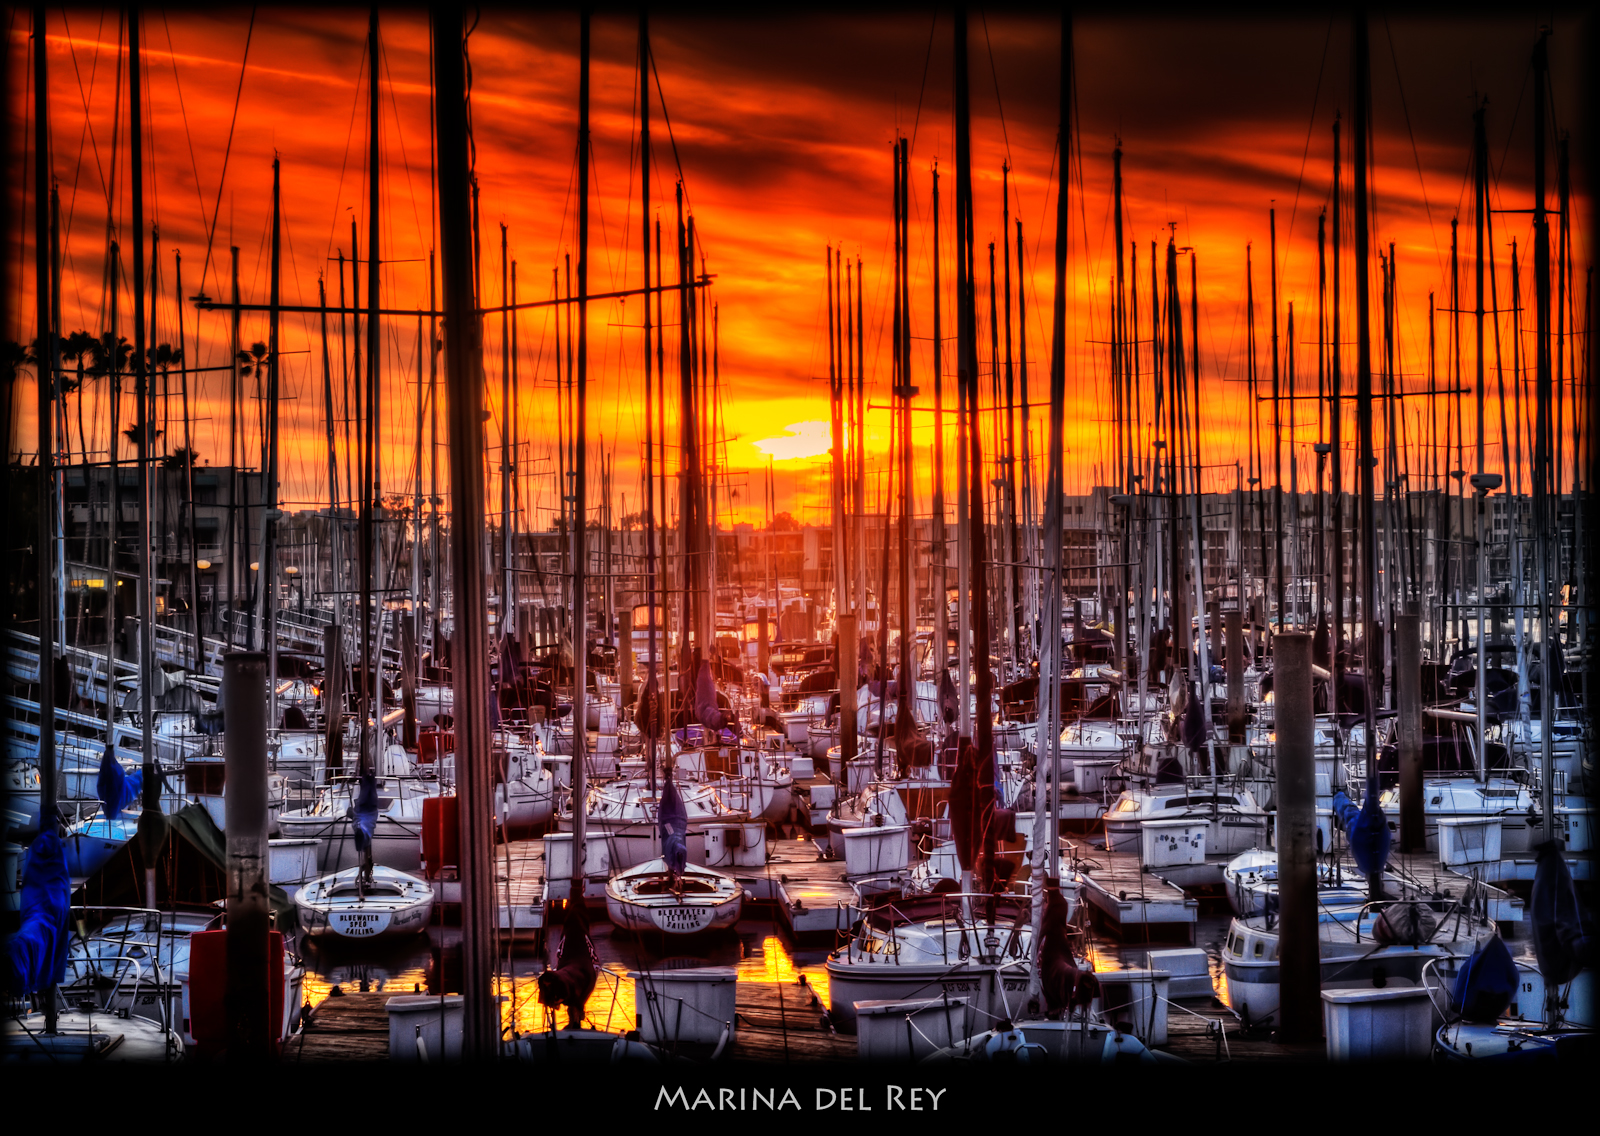 Yesterday's sunset in Marina del Rey. ISO 100, 75mm, f20, 1/8sec. Closed in on the sunset to avoid the very dark clouds further out. HDR of -2, 0, +2 exposures using Photomatix Details Enhancer. Strenght set to 30%, but smoothing set to -10 and microcontrast to +10. This produced a rather flat image, but had the sunset and the boats. Nik White Neutralizer and Tonal Contrast on the boats, Coffee Graduated Filter on the sky. In PS: overlay layer for contrast plus luminosity mask Curves. Burning around the edges.